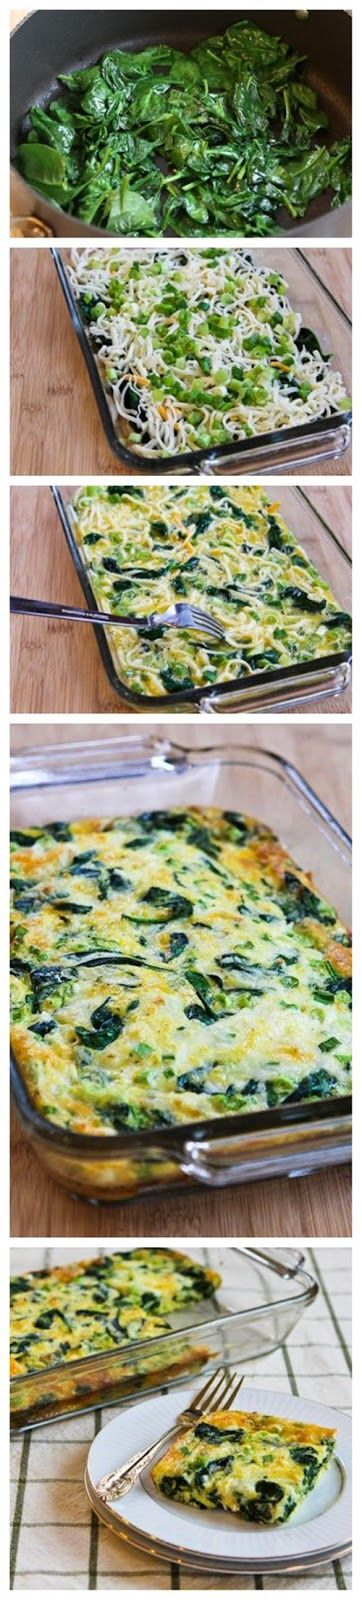 Spinach and Mozzarella Egg Bake. Great easy dinner. I used arugula instead of spinach plus added bacon and sautéed mushrooms. Make a big bat...